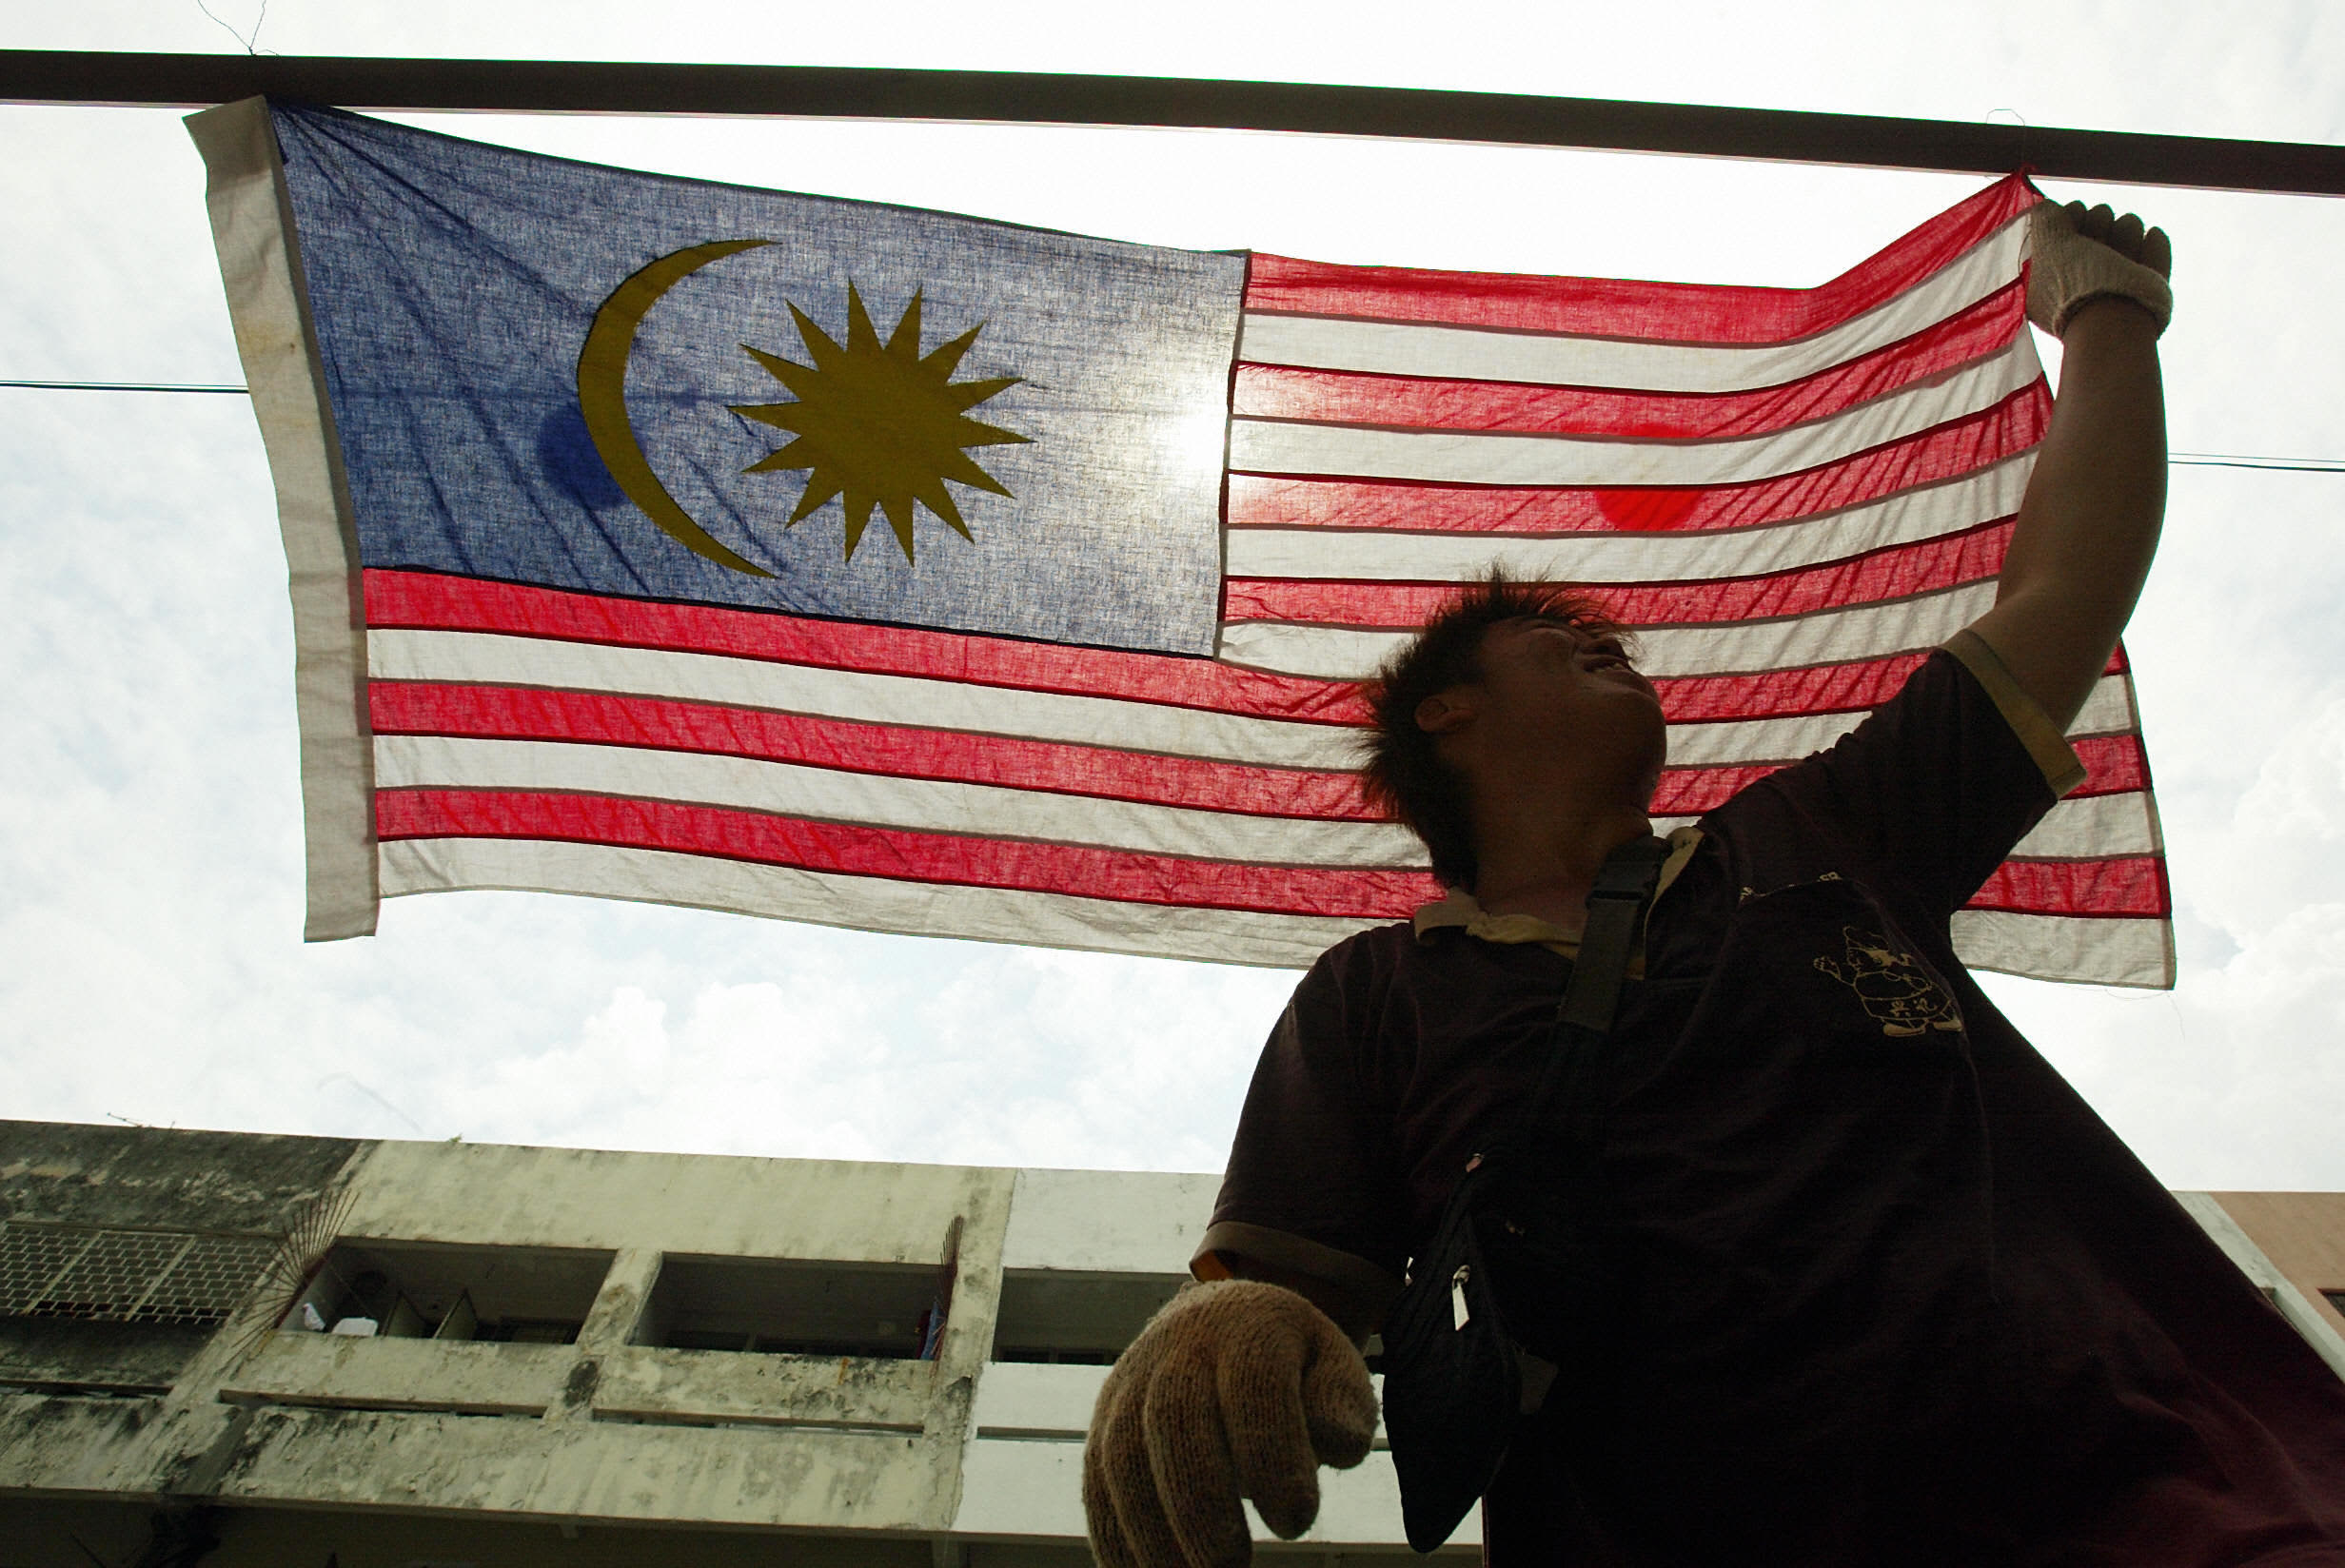 Malaysia may set aside its belt-tightening plans to save its economy from trade war damage